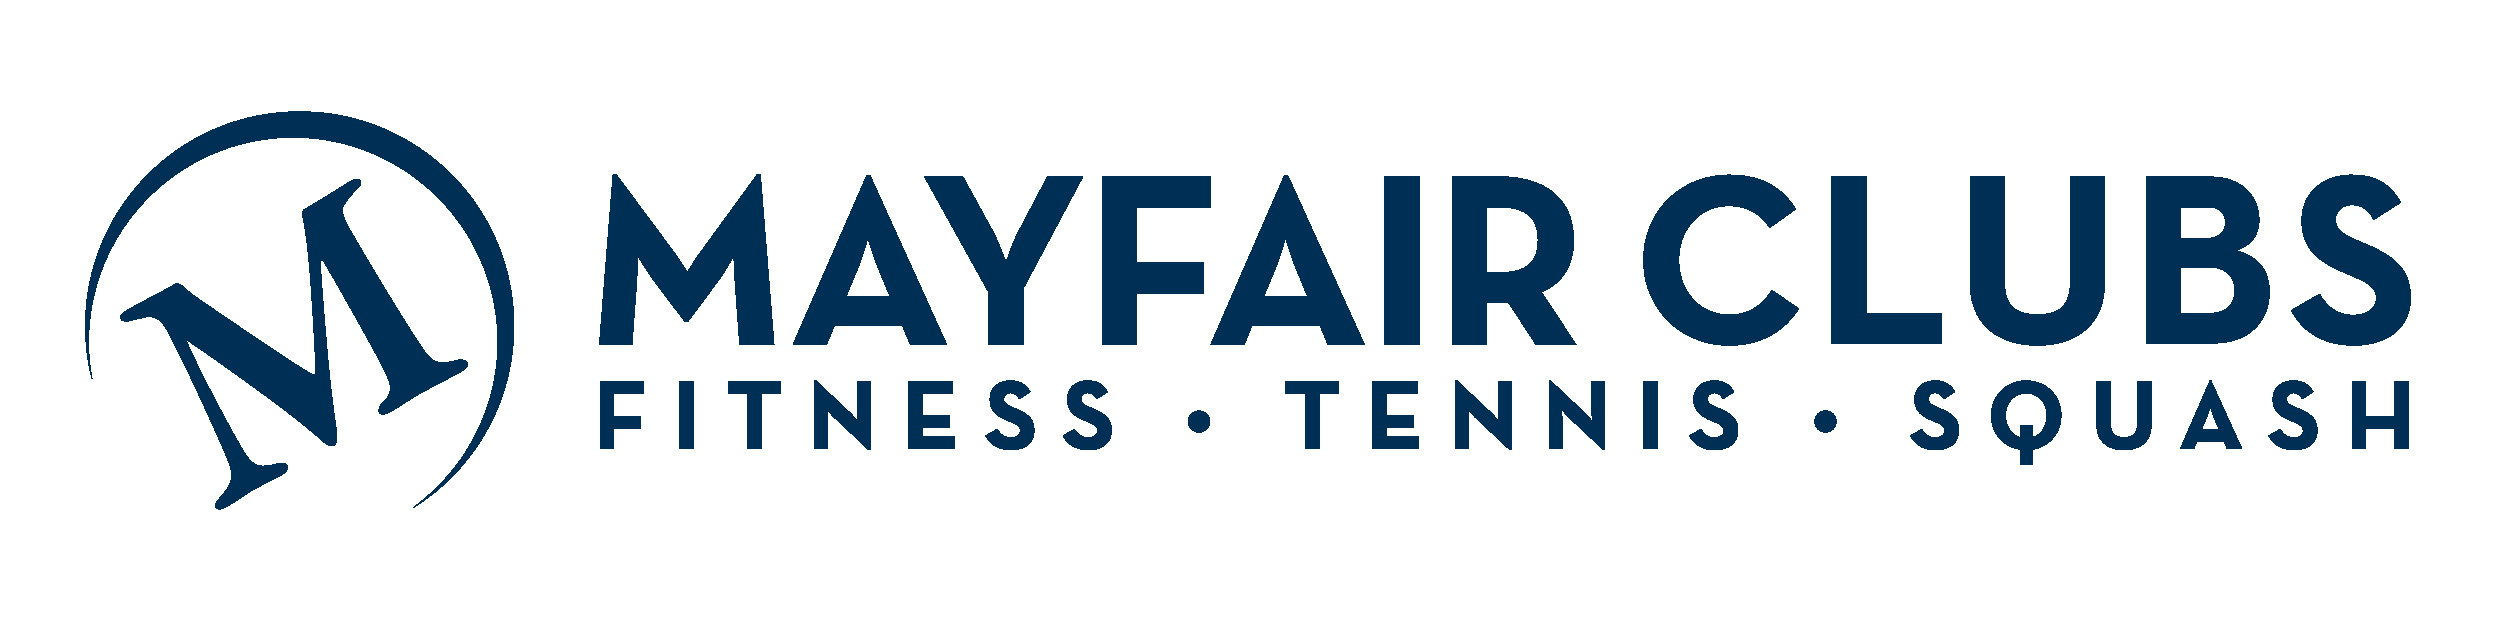 mayfair_logo_horizontal_blue-01